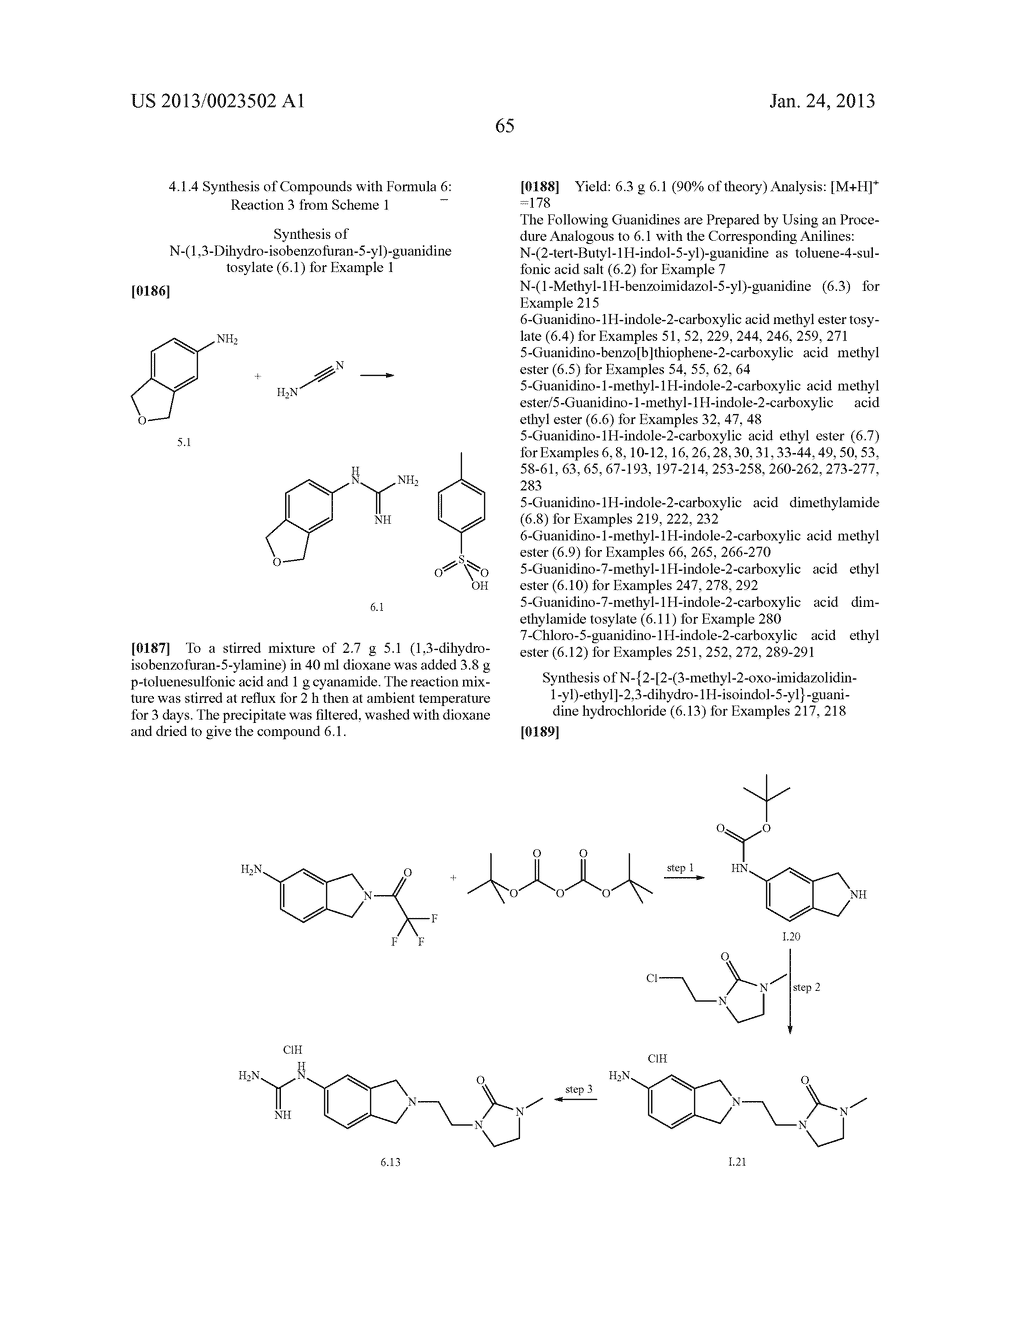 SUBSTITUTED PYRIDINYL-PYRIMIDINES AND THEIR USE AS MEDICAMENTS - diagram, schematic, and image 66